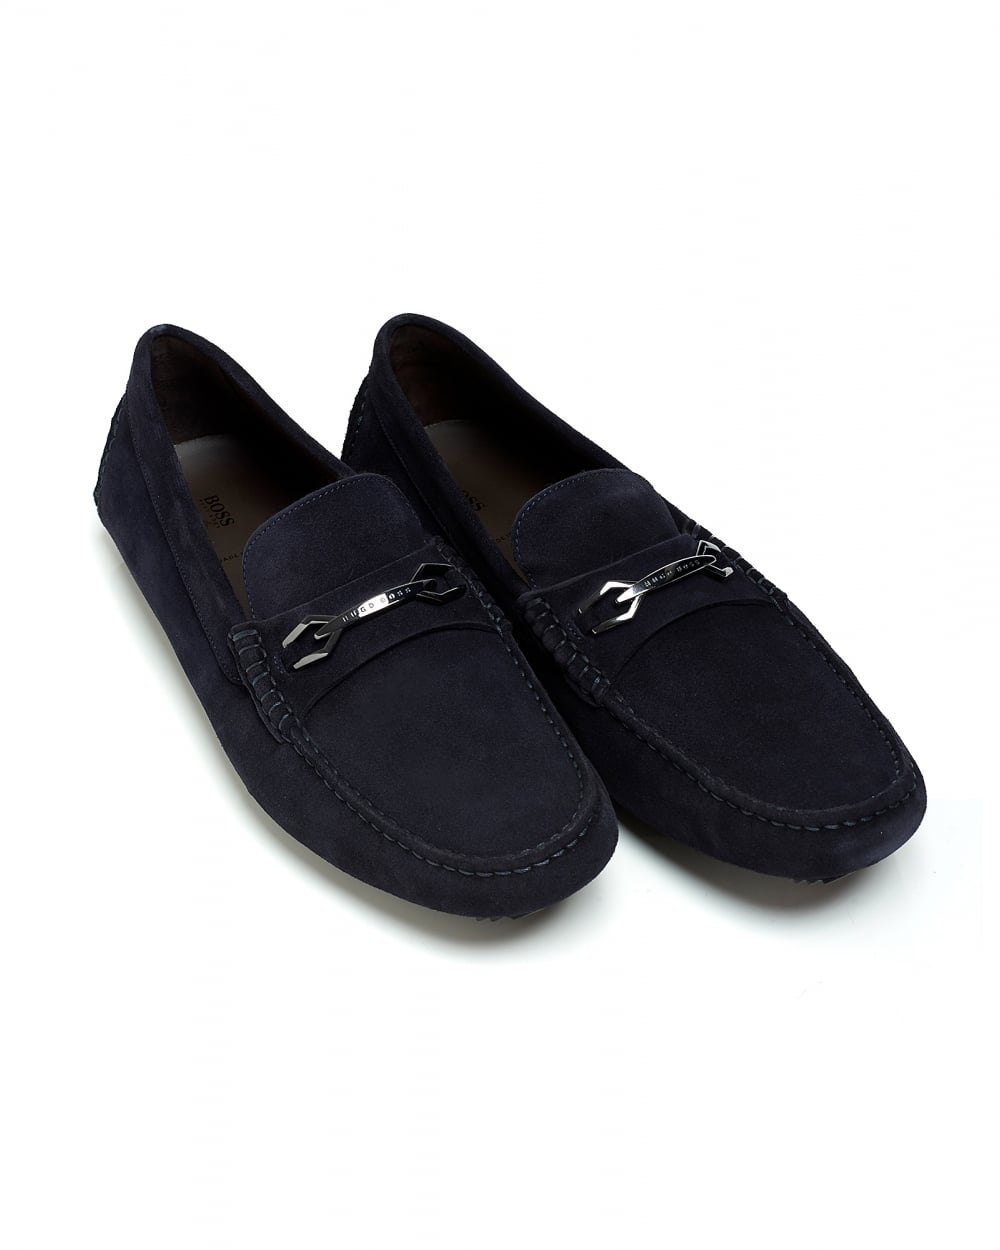 Black Suede Driving Shoes Womens